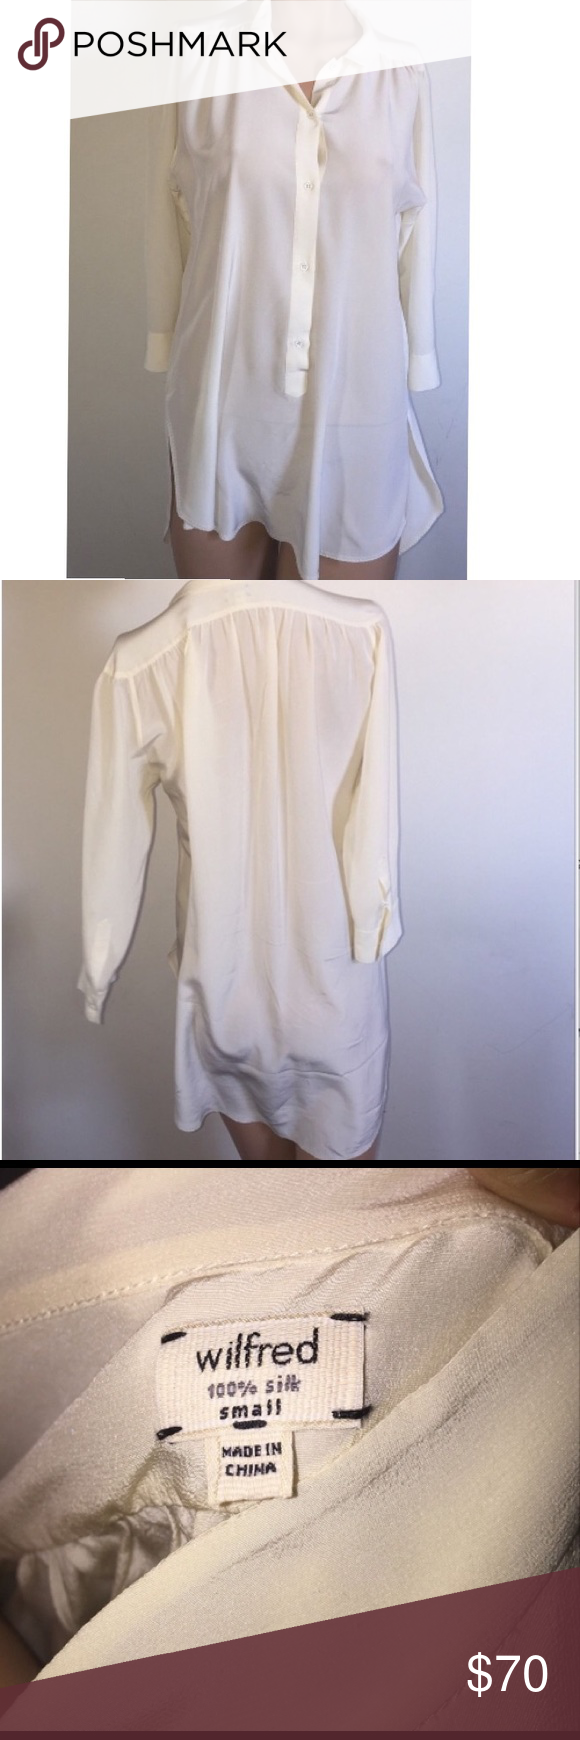 2e85bcdf34f35 Wilfred Aritzia ivory 100% silk Giulia blouse Size small 100% silk blouse  worn once. Like-new condition! Aritzia Tops Blouses